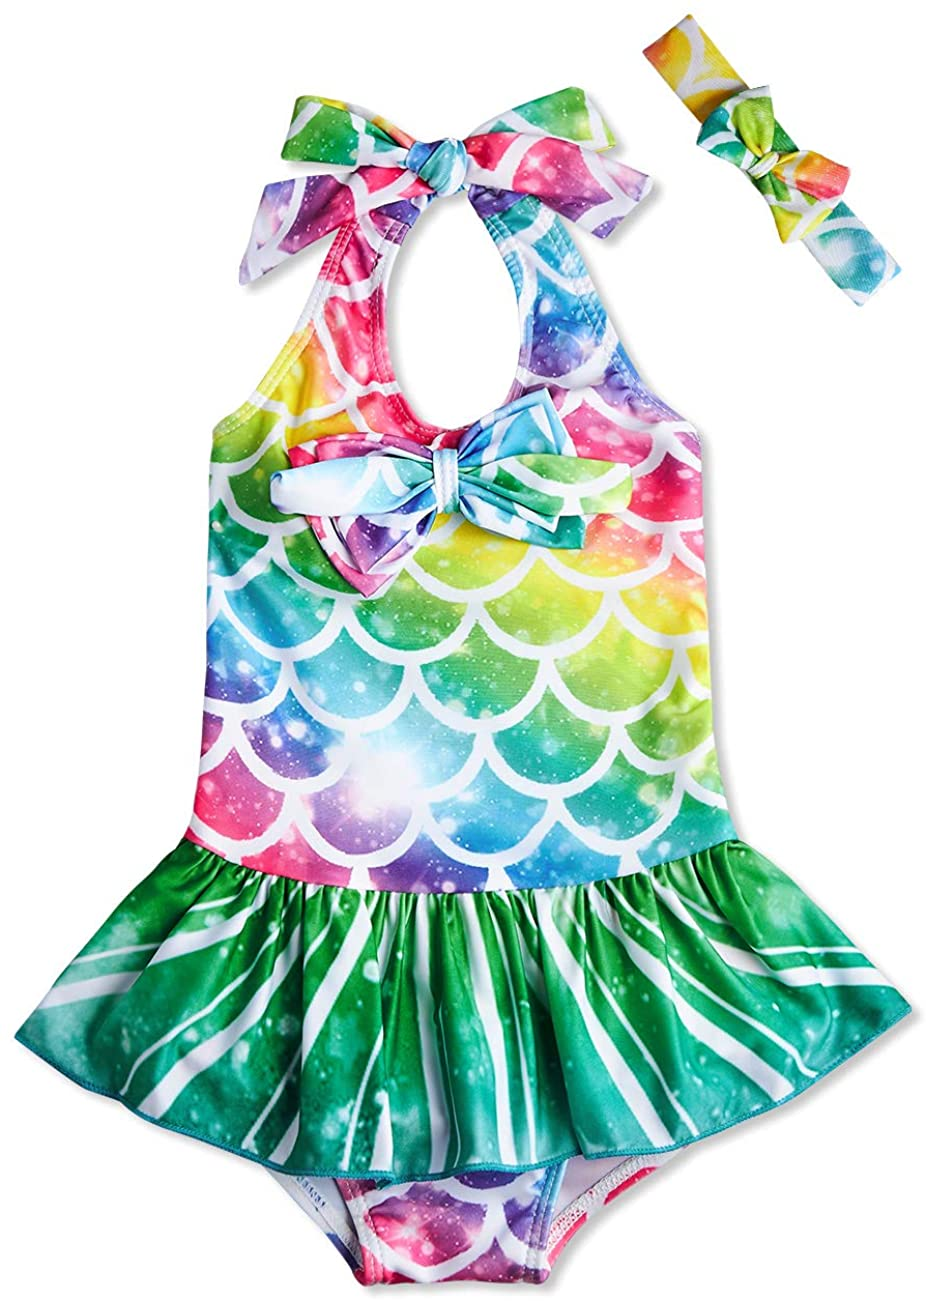 RAISEVERN 1-5 Years Girls One Piece Swimsuit Beach Bathing Suit Mermaid Swimwear with Headband